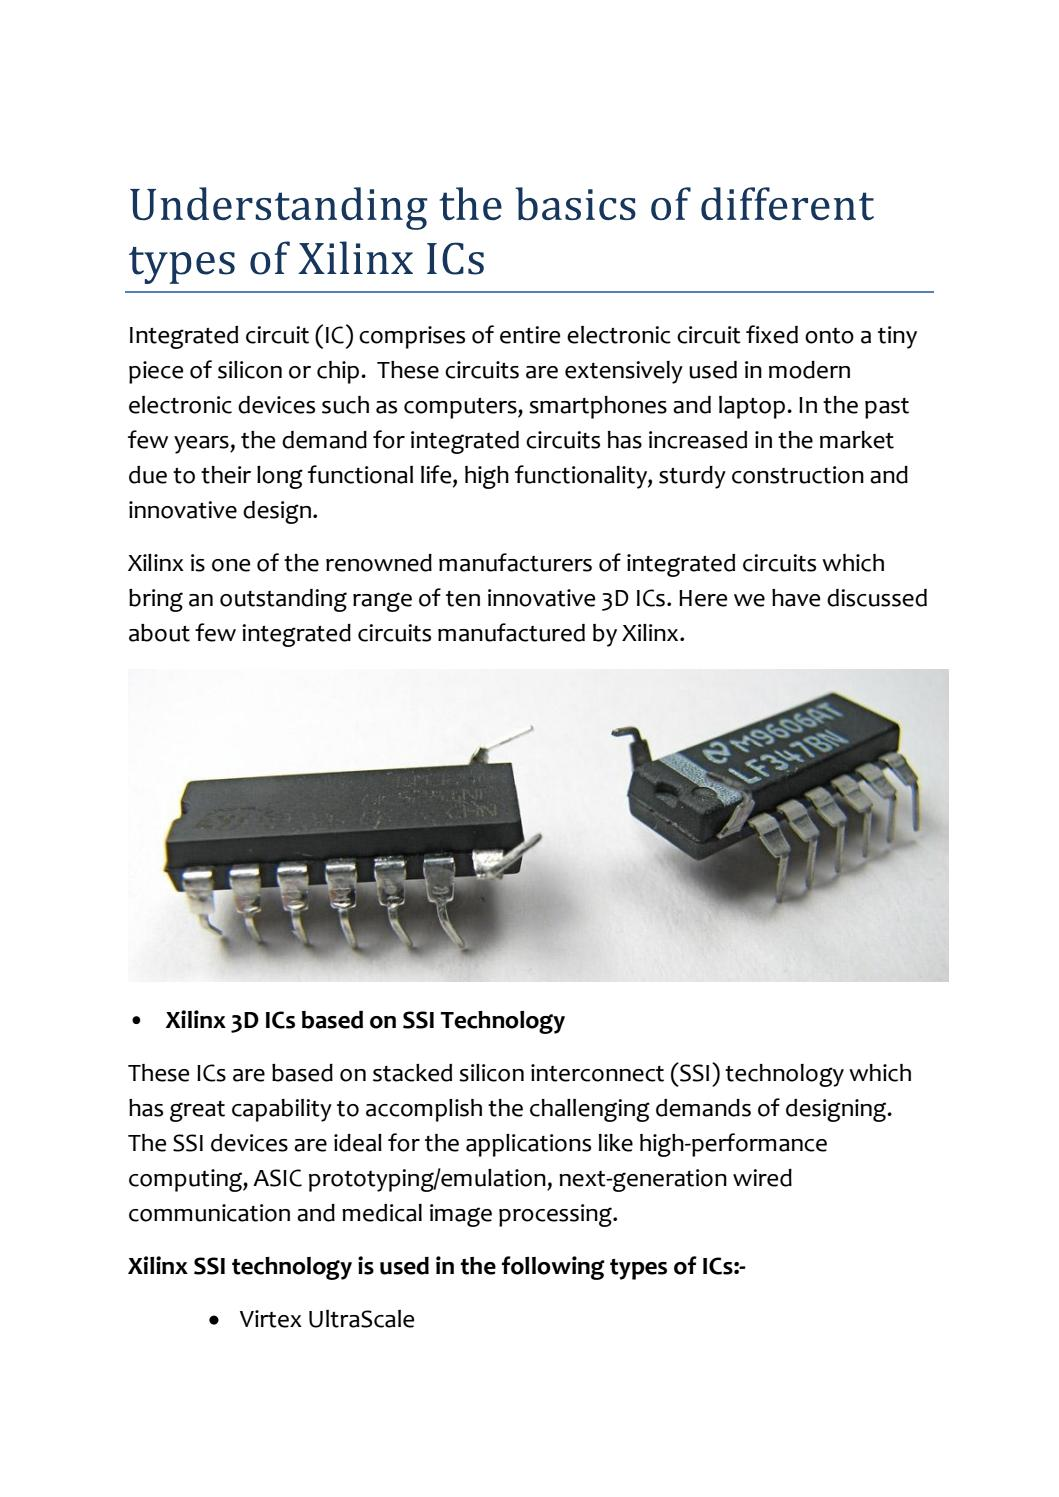 Understanding The Basics Of Different Types Xilinx Ics By Express Integrated Circuit Circuits Design Technology Group Issuu